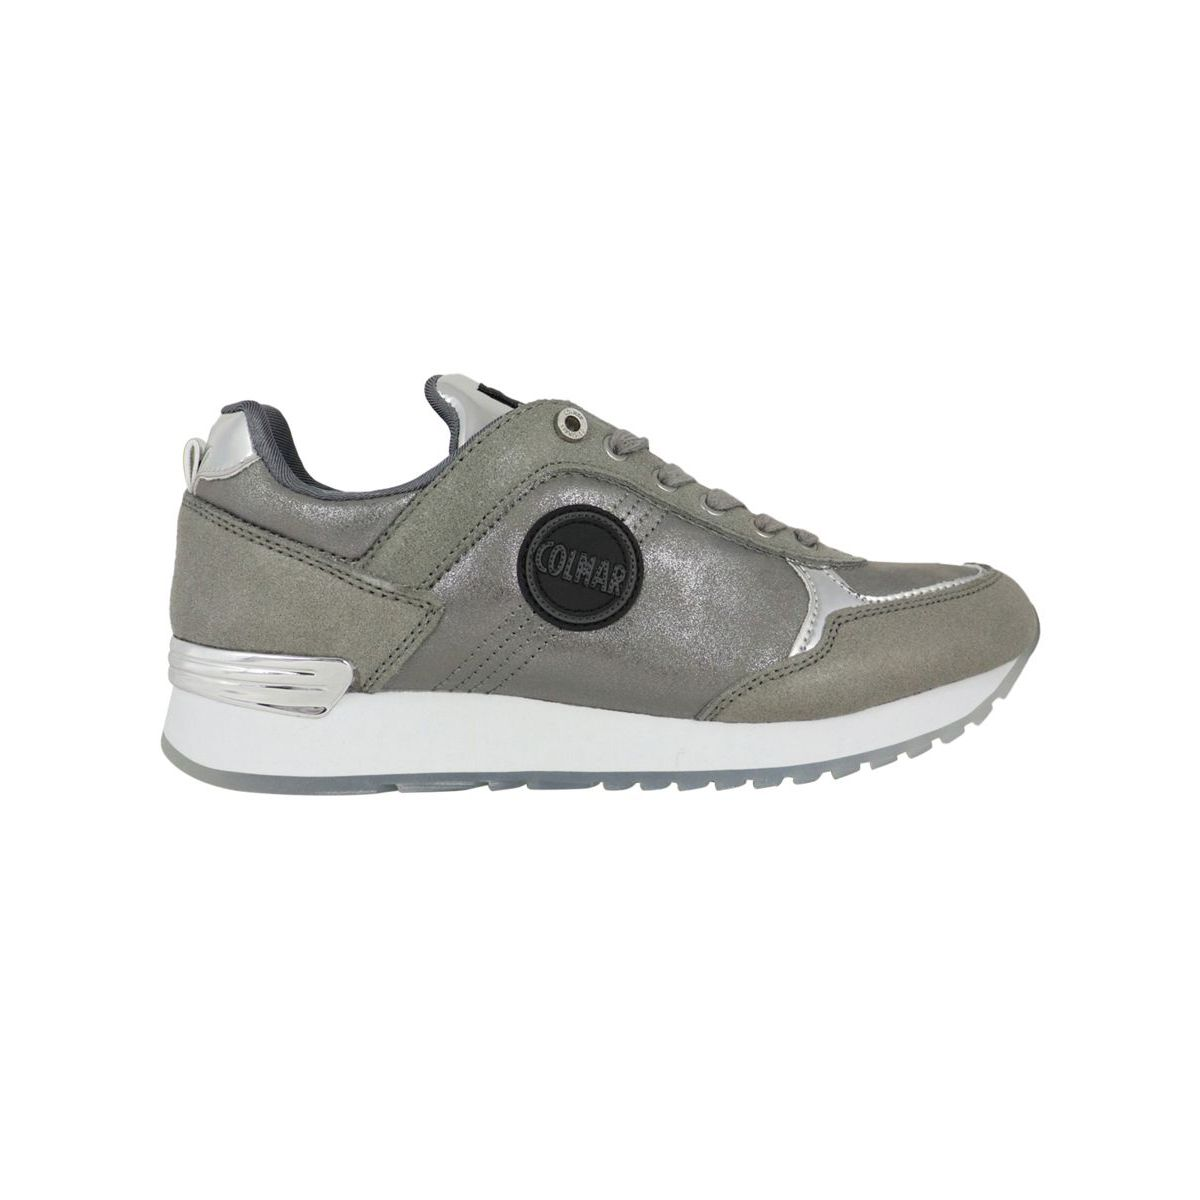 Travis Punk 162 sneakers in suede leather Silver Colmar Shoes